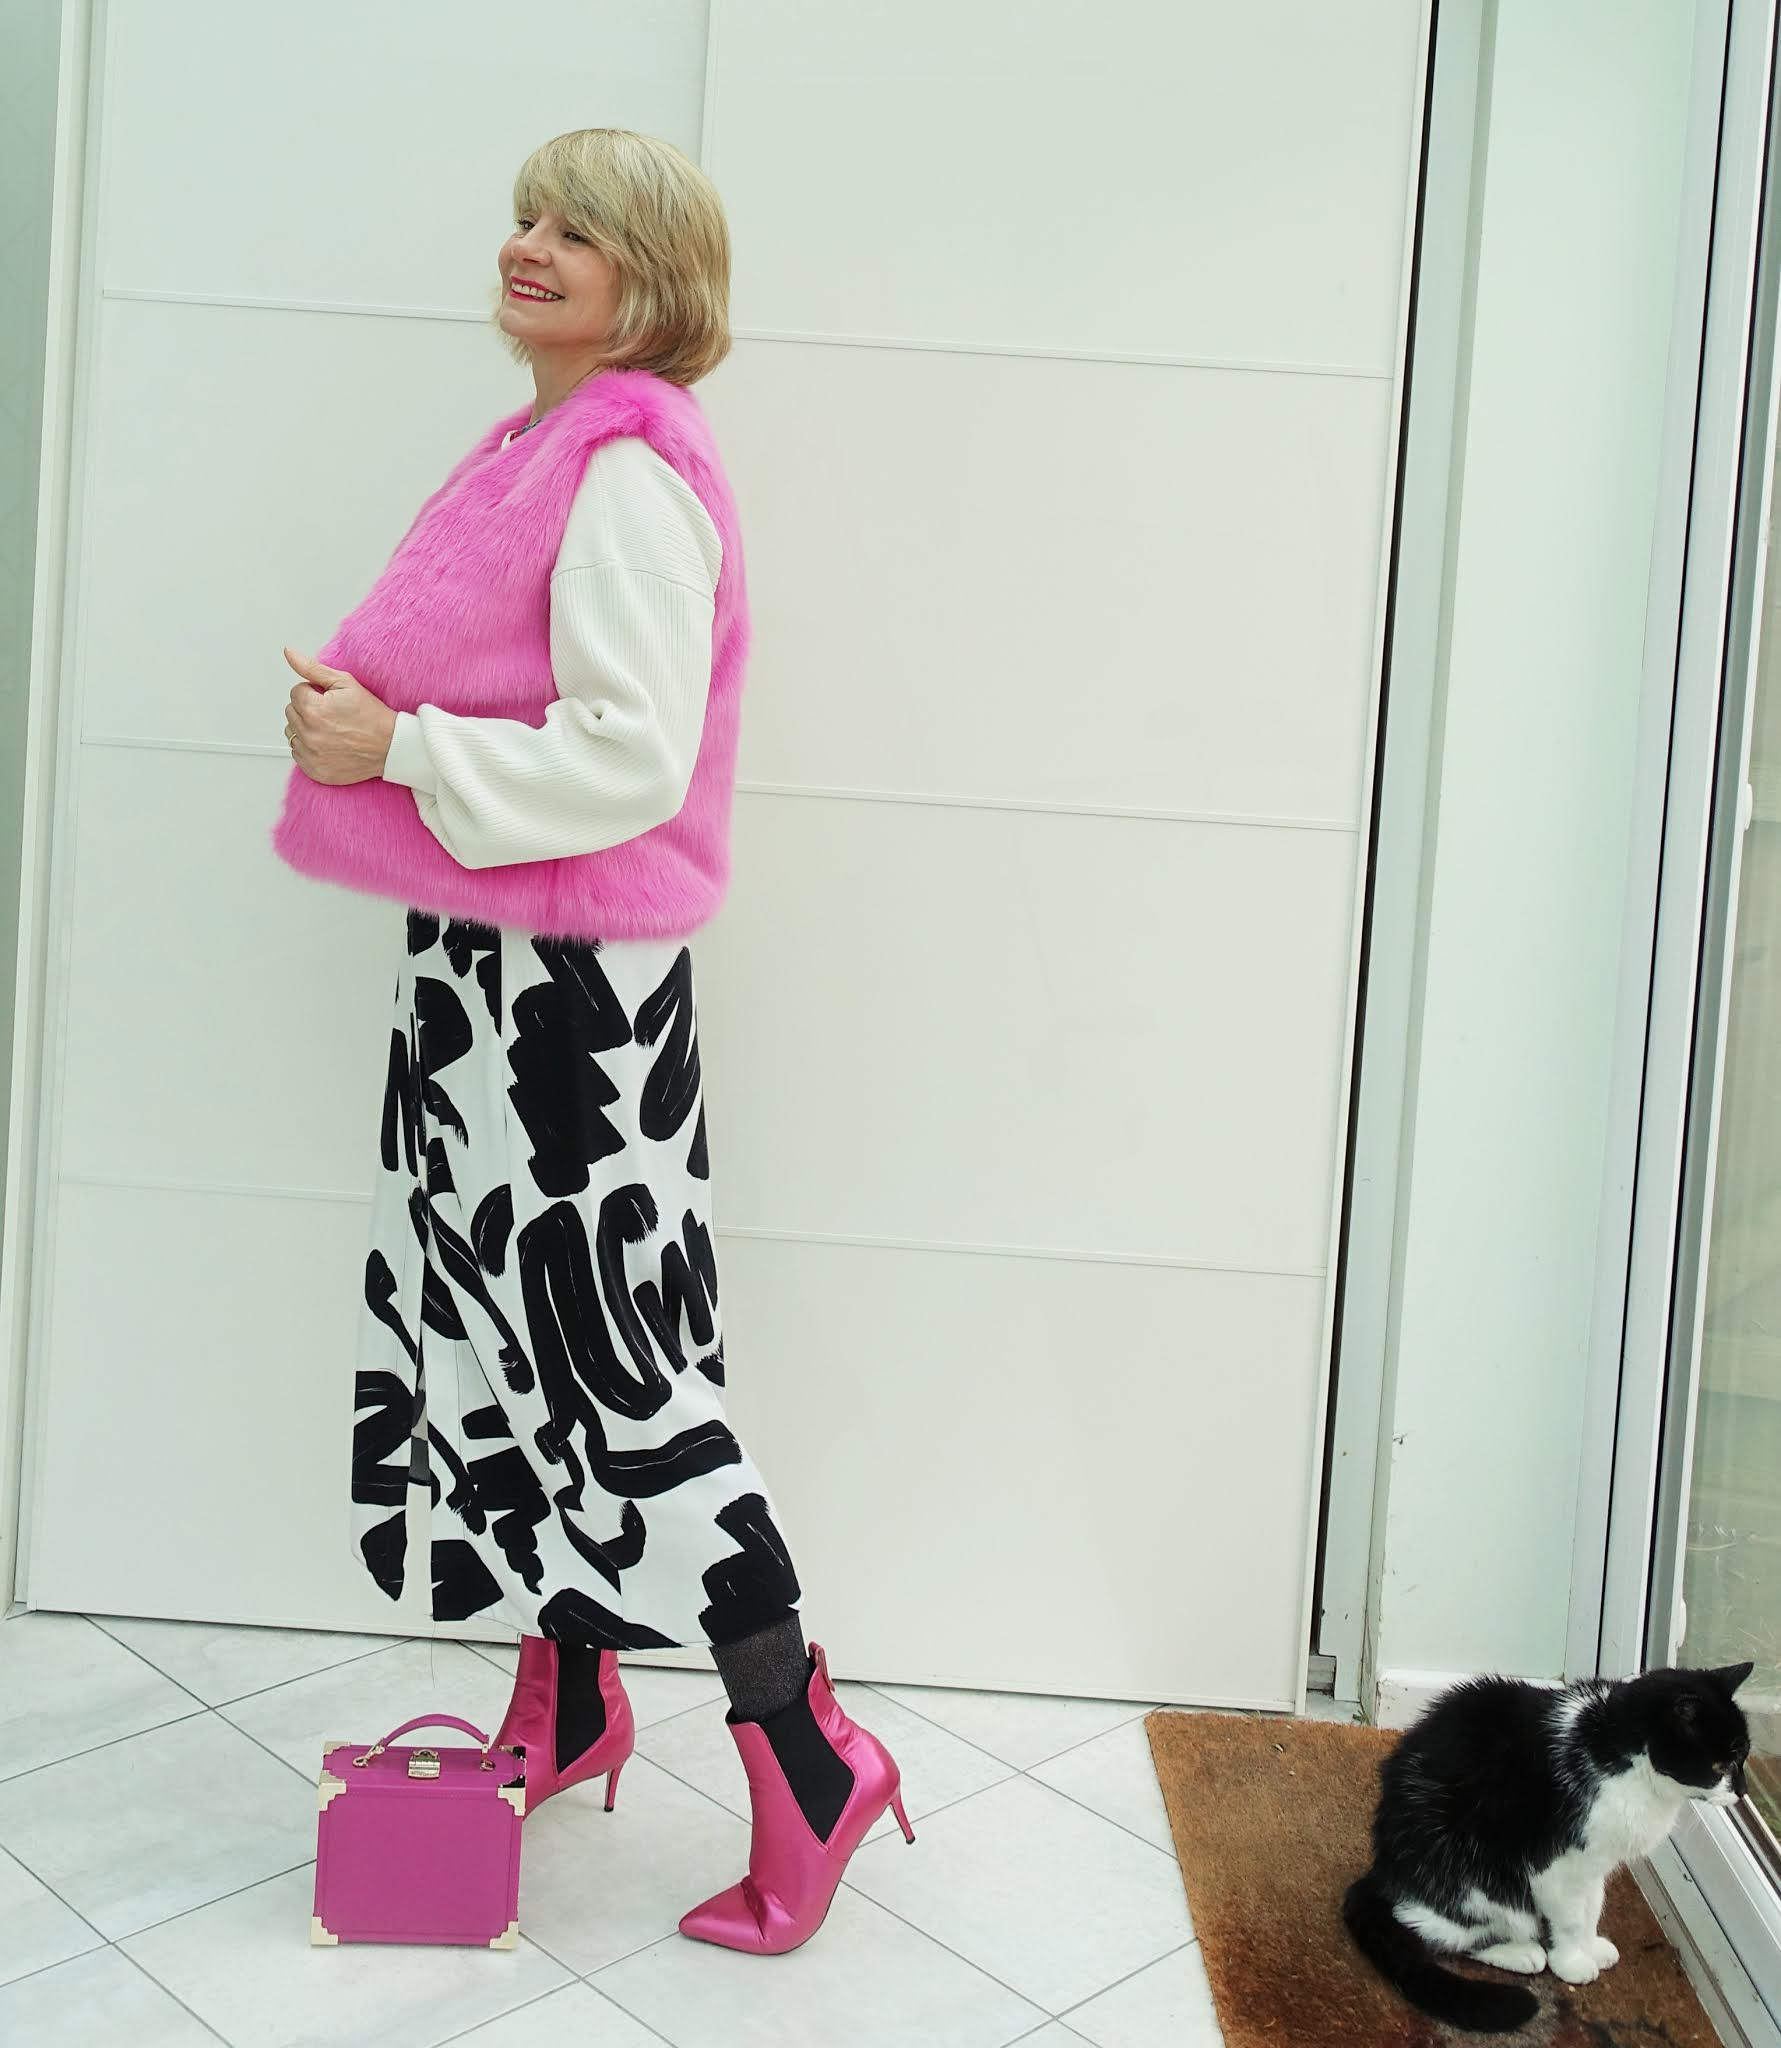 A faux fur pink gilet and pink boots liven up a black and white skirt and white top as Is This Mutton explores the different names for garments used in the UK and US